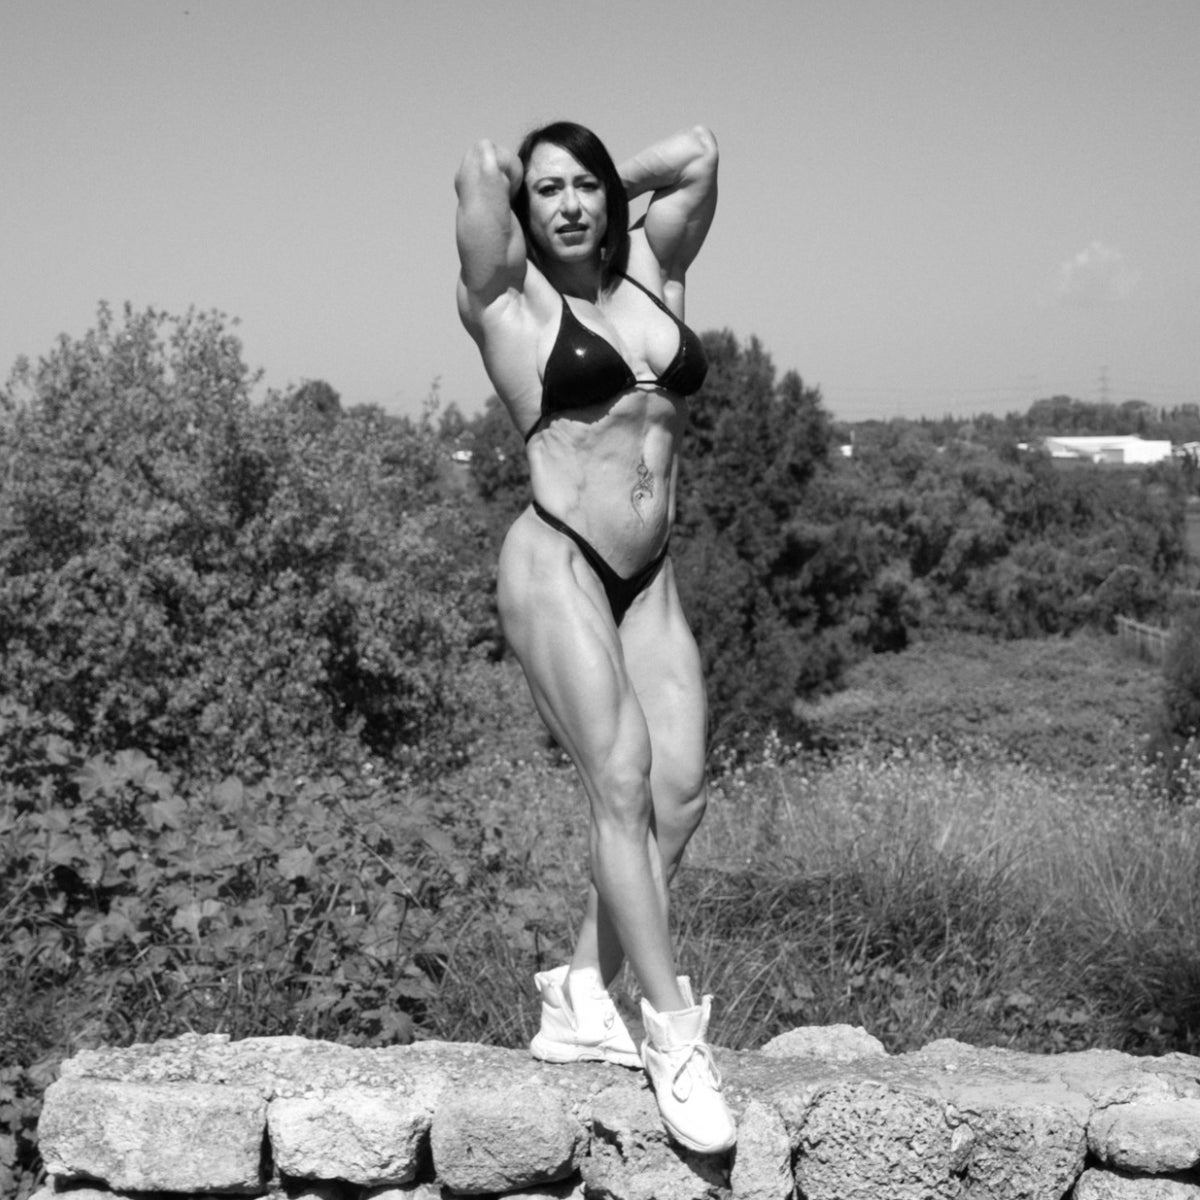 Israeli bodybuilder Hagit Seindlis. 'I was always the youngest and shortest in the class.'